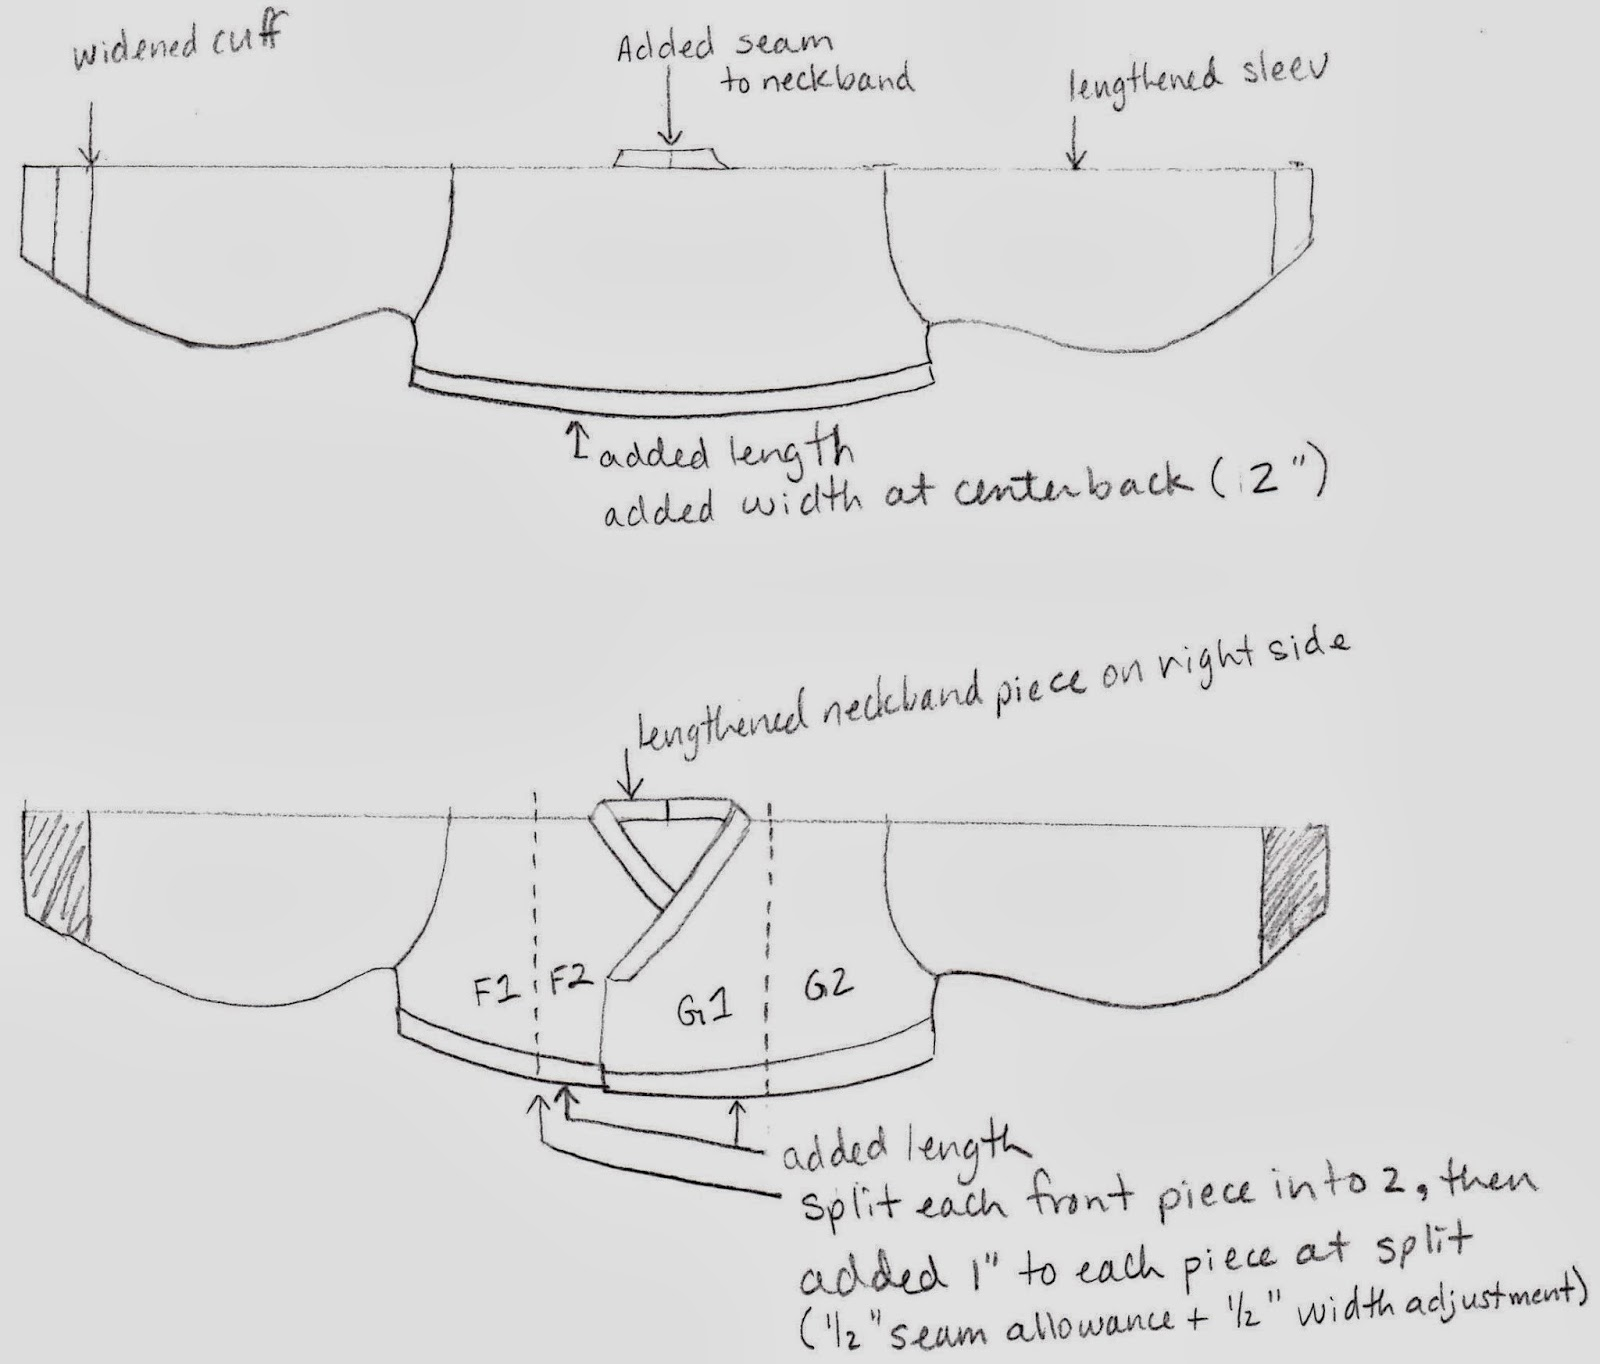 So Steady As She Sews Hanbok Traditional Korean Womens Dress How To Diagram Of Tie Shoes A Second Mockup Was Cut Taking The Above Modifications Into Account Having Already Established Assembly And Finishing My Focus For This Step